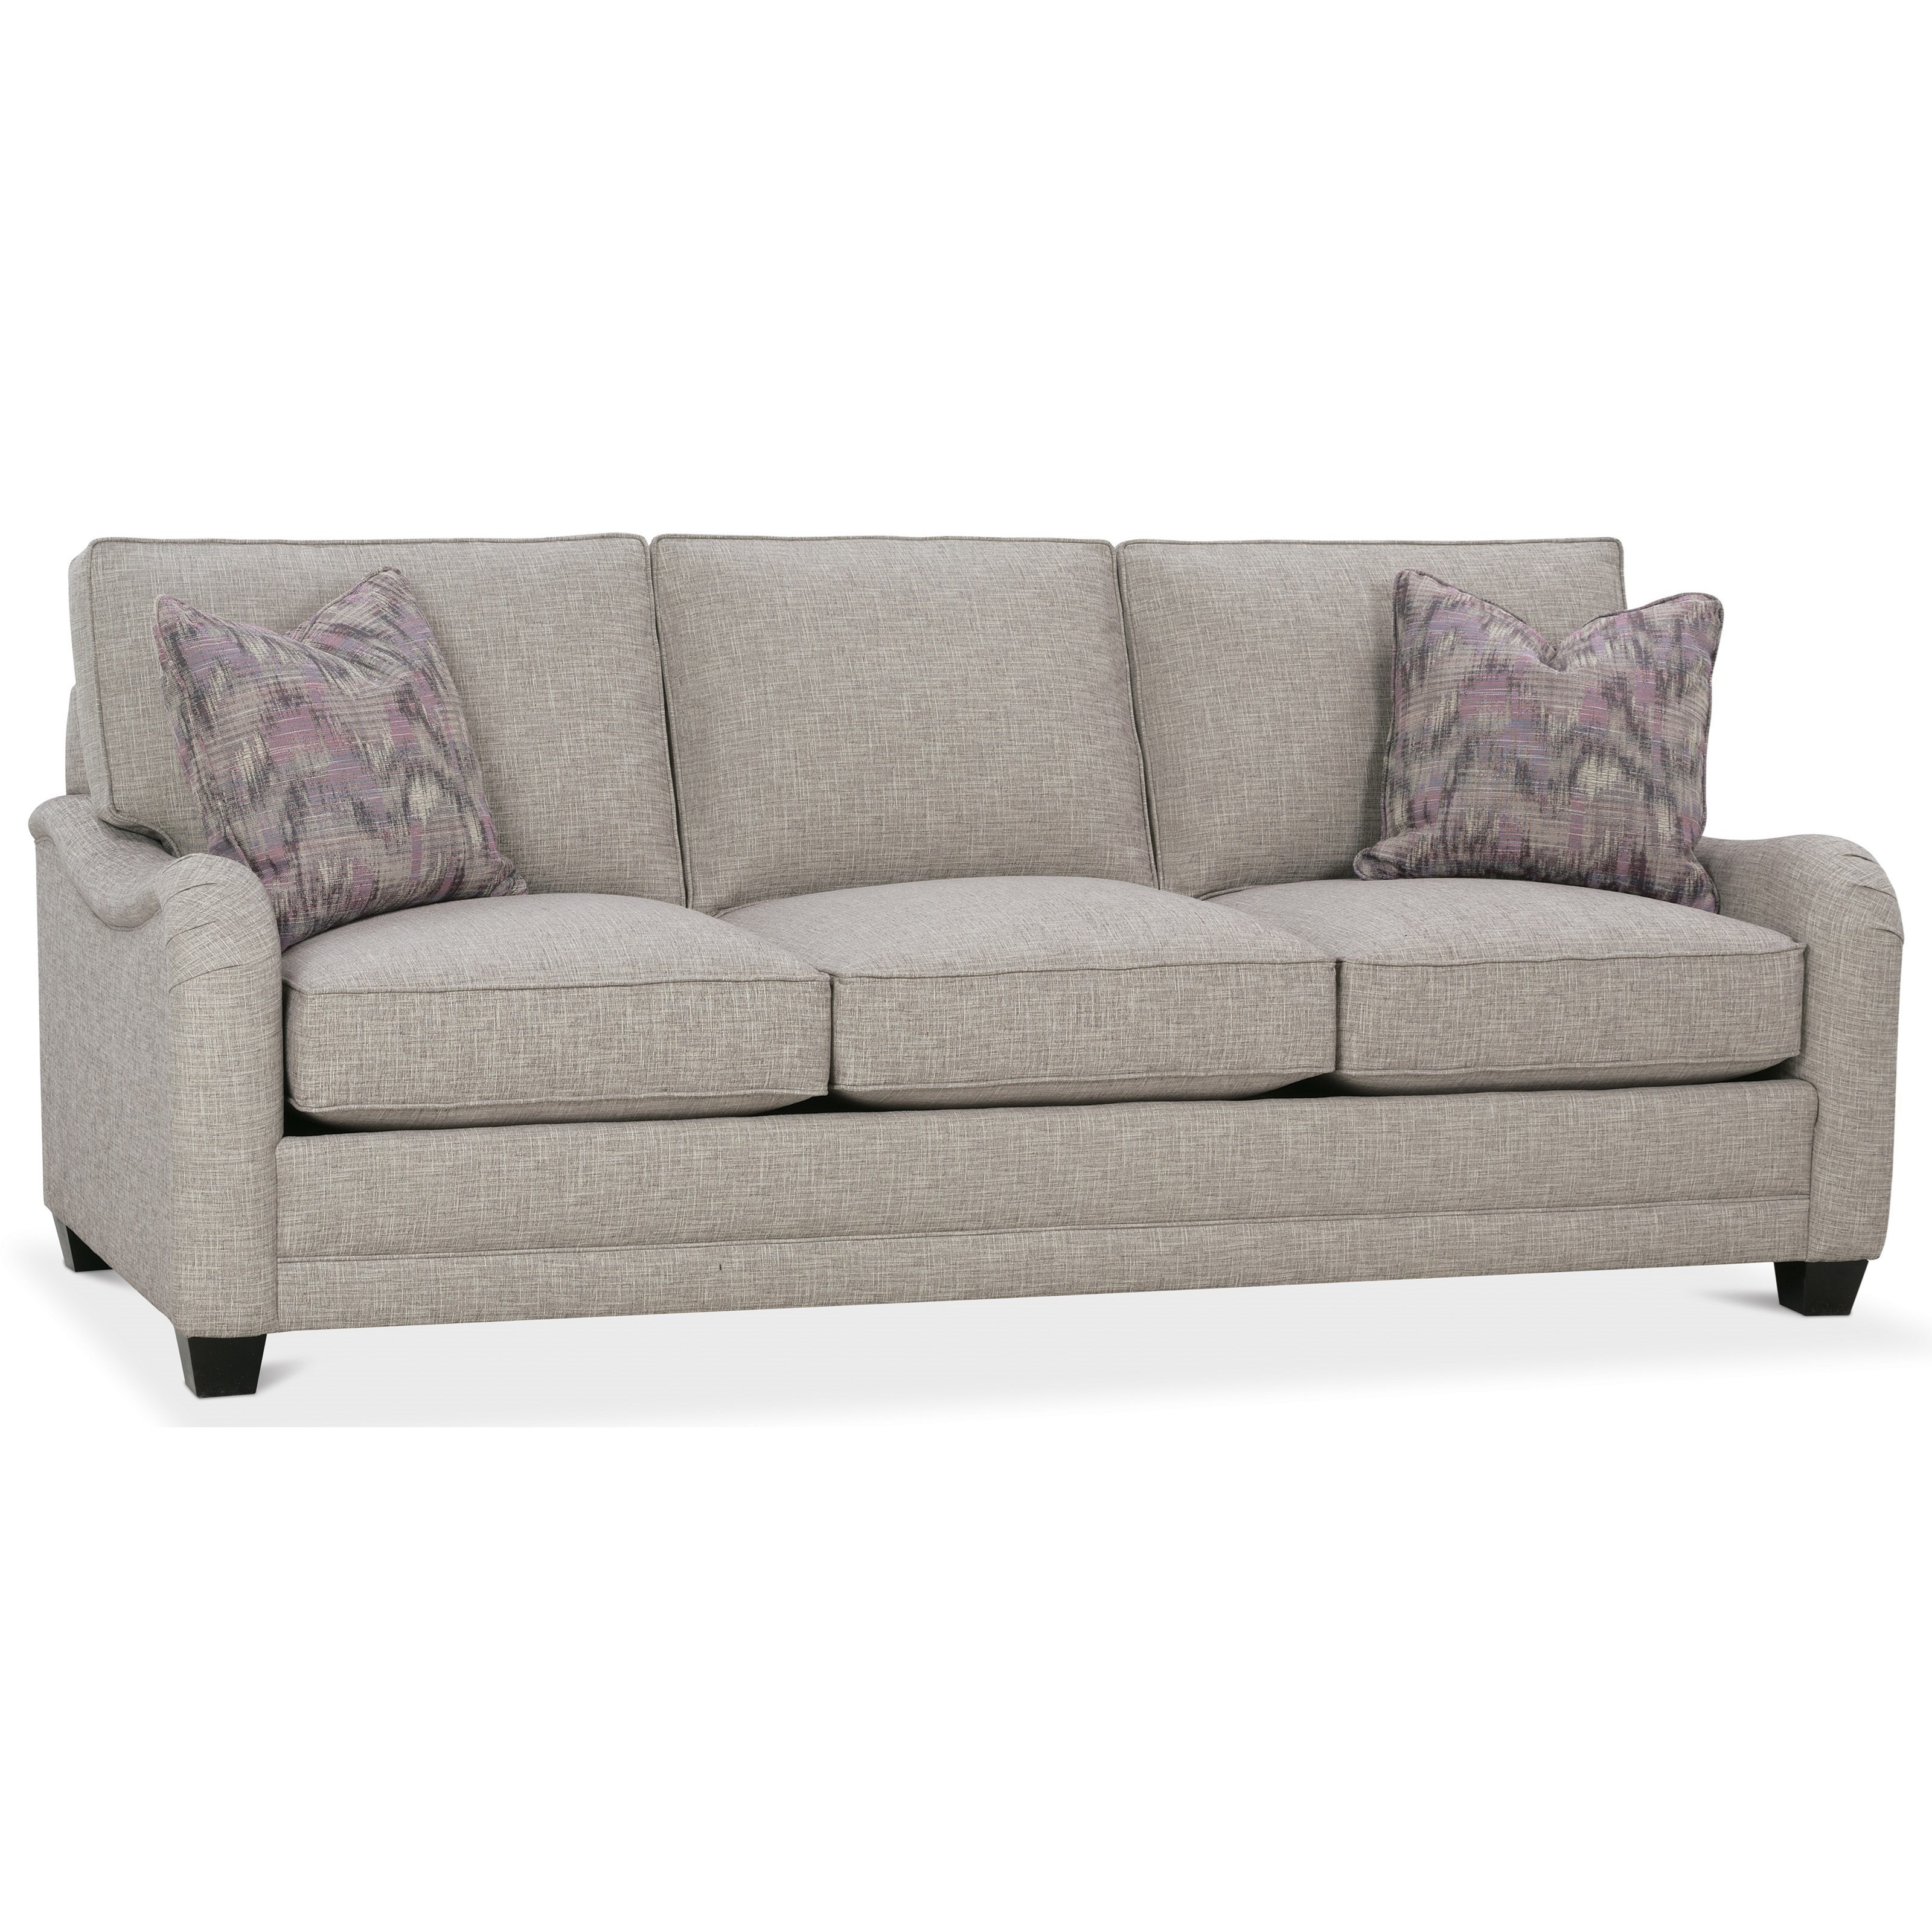 Rowe Selections ICustomizable Sofa ...